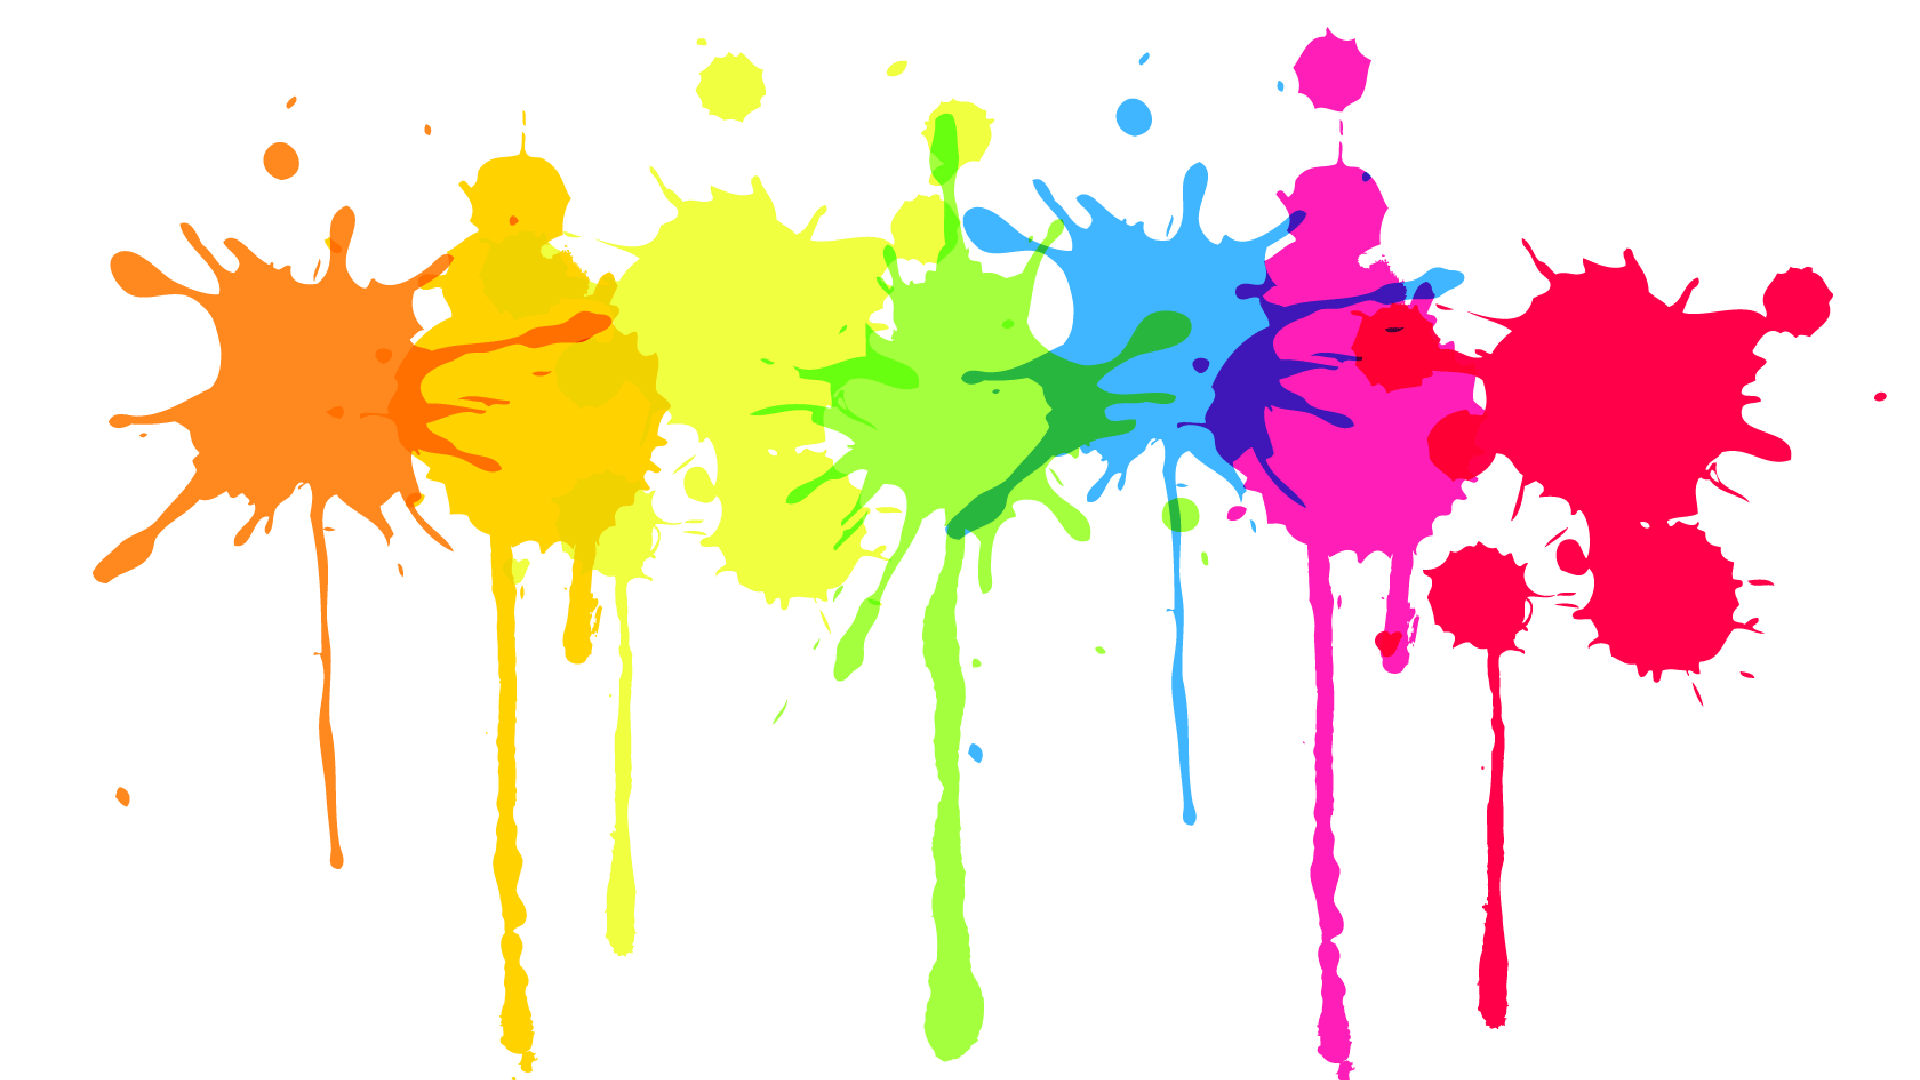 Painting - Painting PNG HD